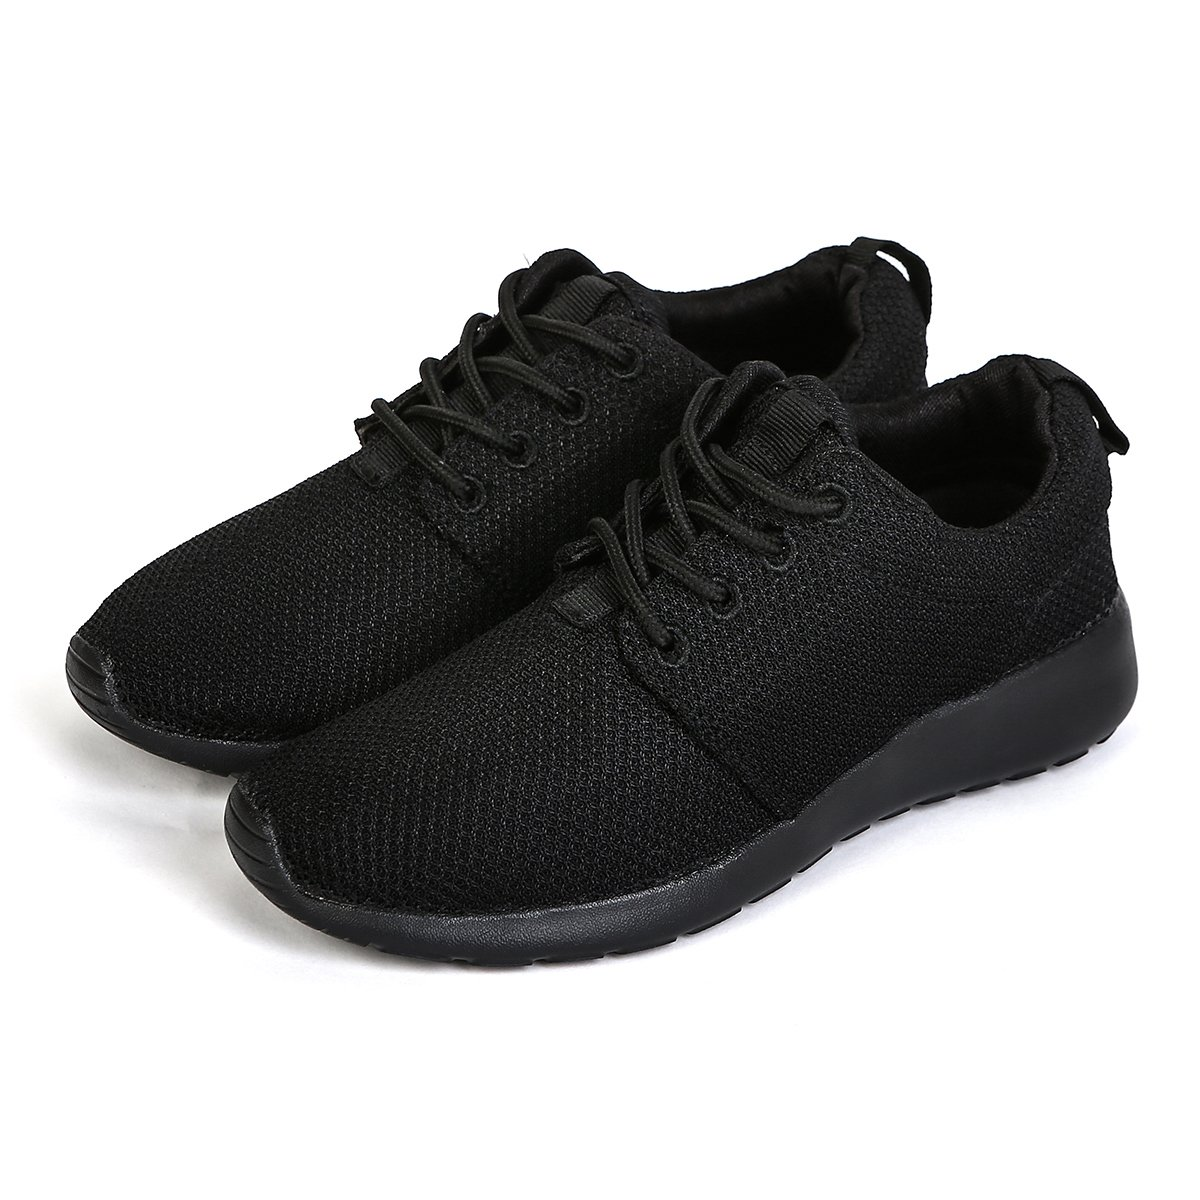 ZGR Women's Mens Unisex Mesh Lightweight Running Shoes Casual Walking Athletic Breathable Fashion Sneakers Black Size US9(W)